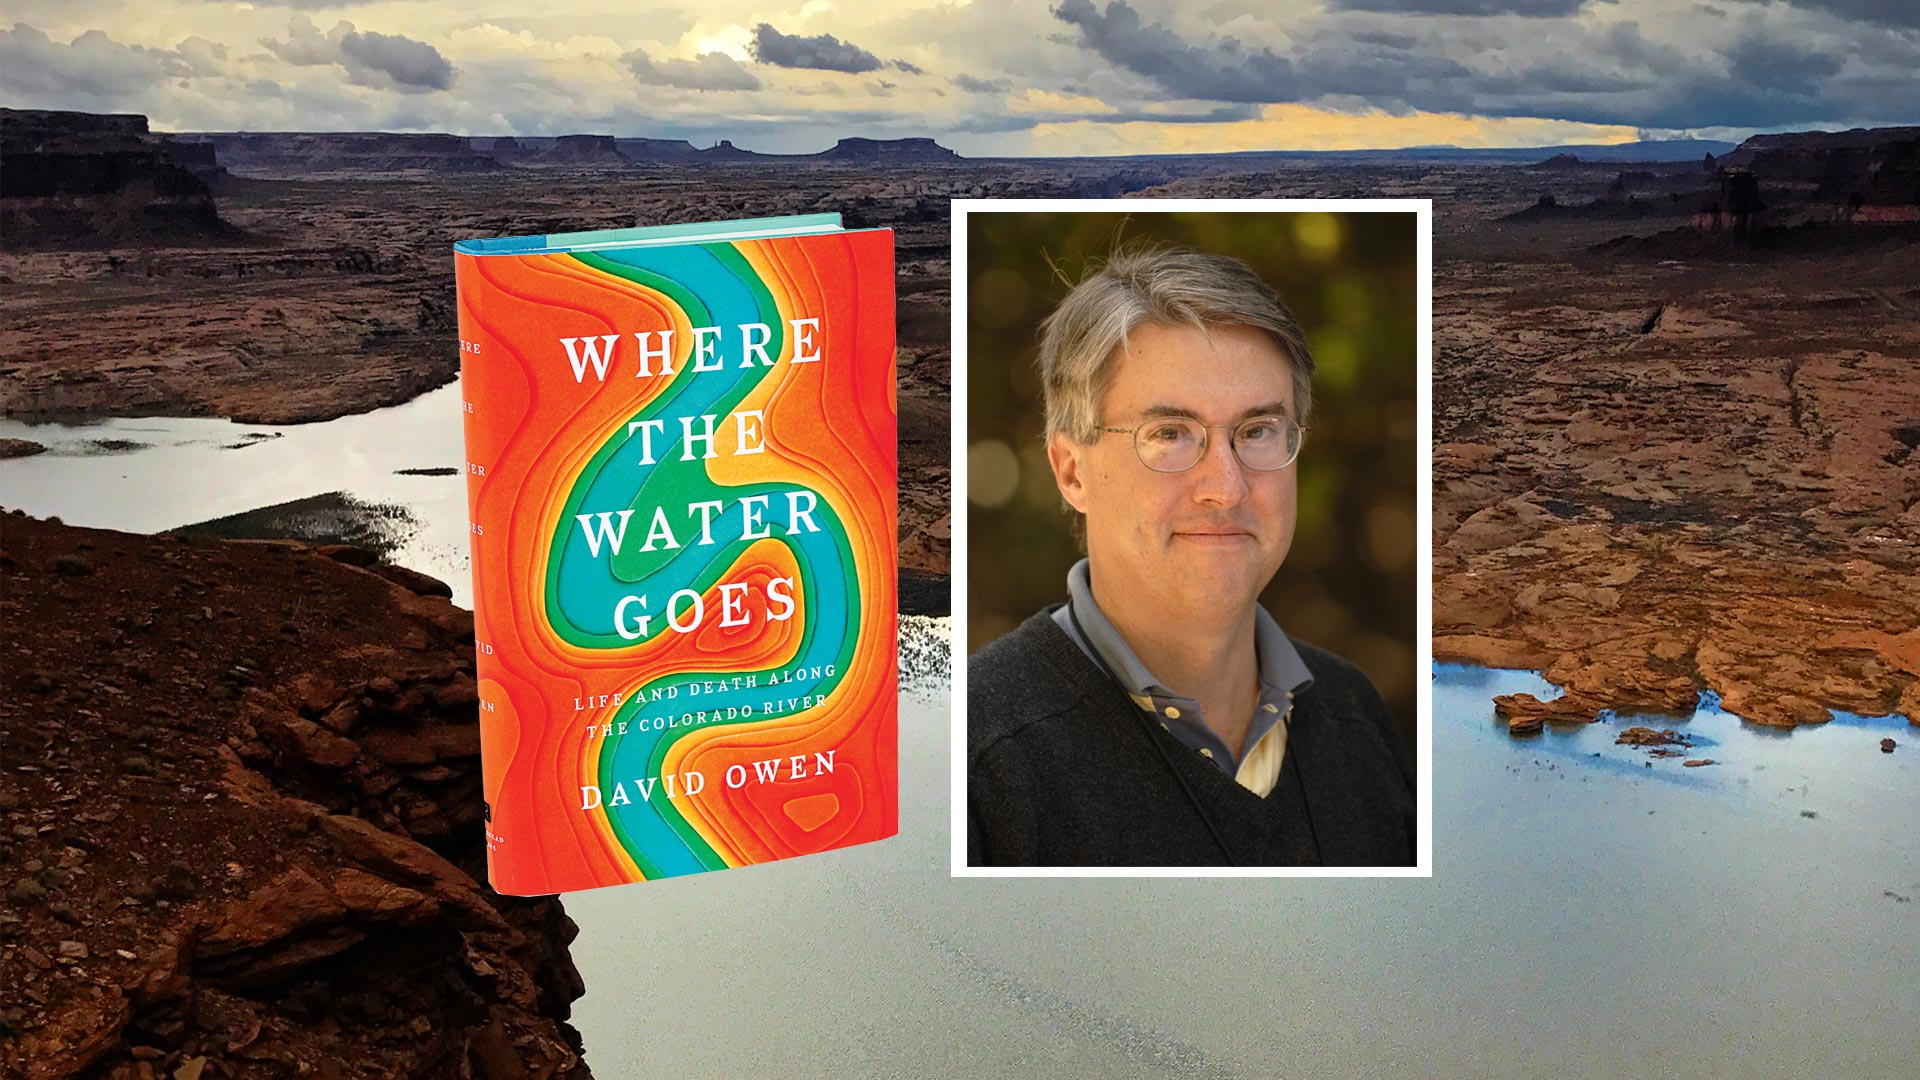 Regular New Yorker contributor David Owen writes about the Colorado River in his latest book.